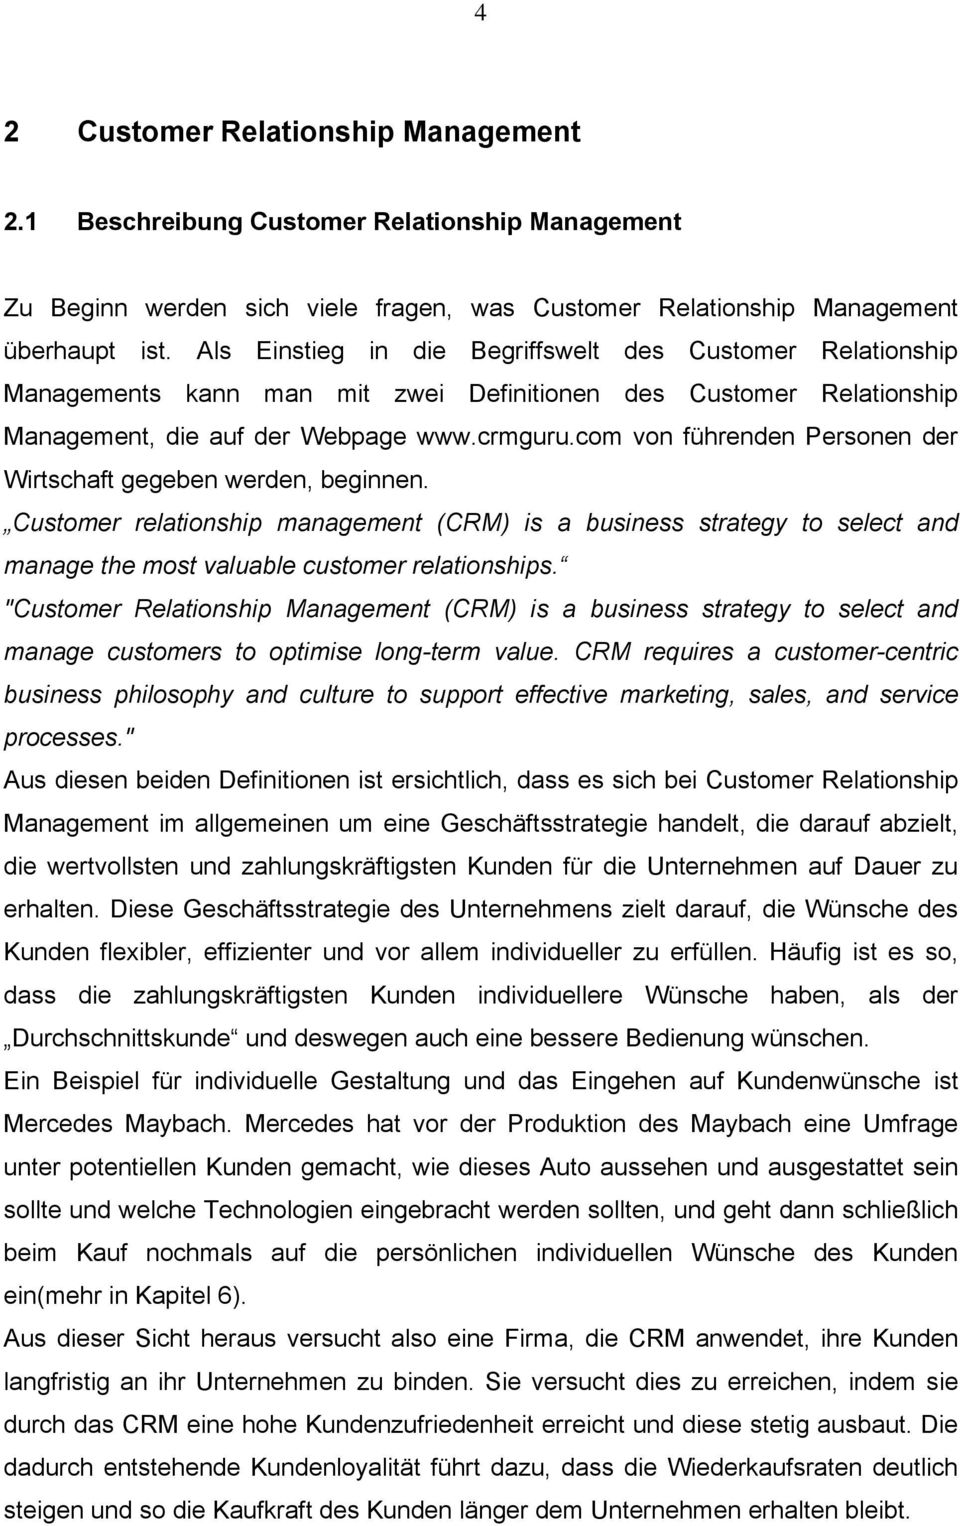 com von führenden Personen der Wirtschaft gegeben werden, beginnen. Customer relationship management (CRM) is a business strategy to select and manage the most valuable customer relationships.